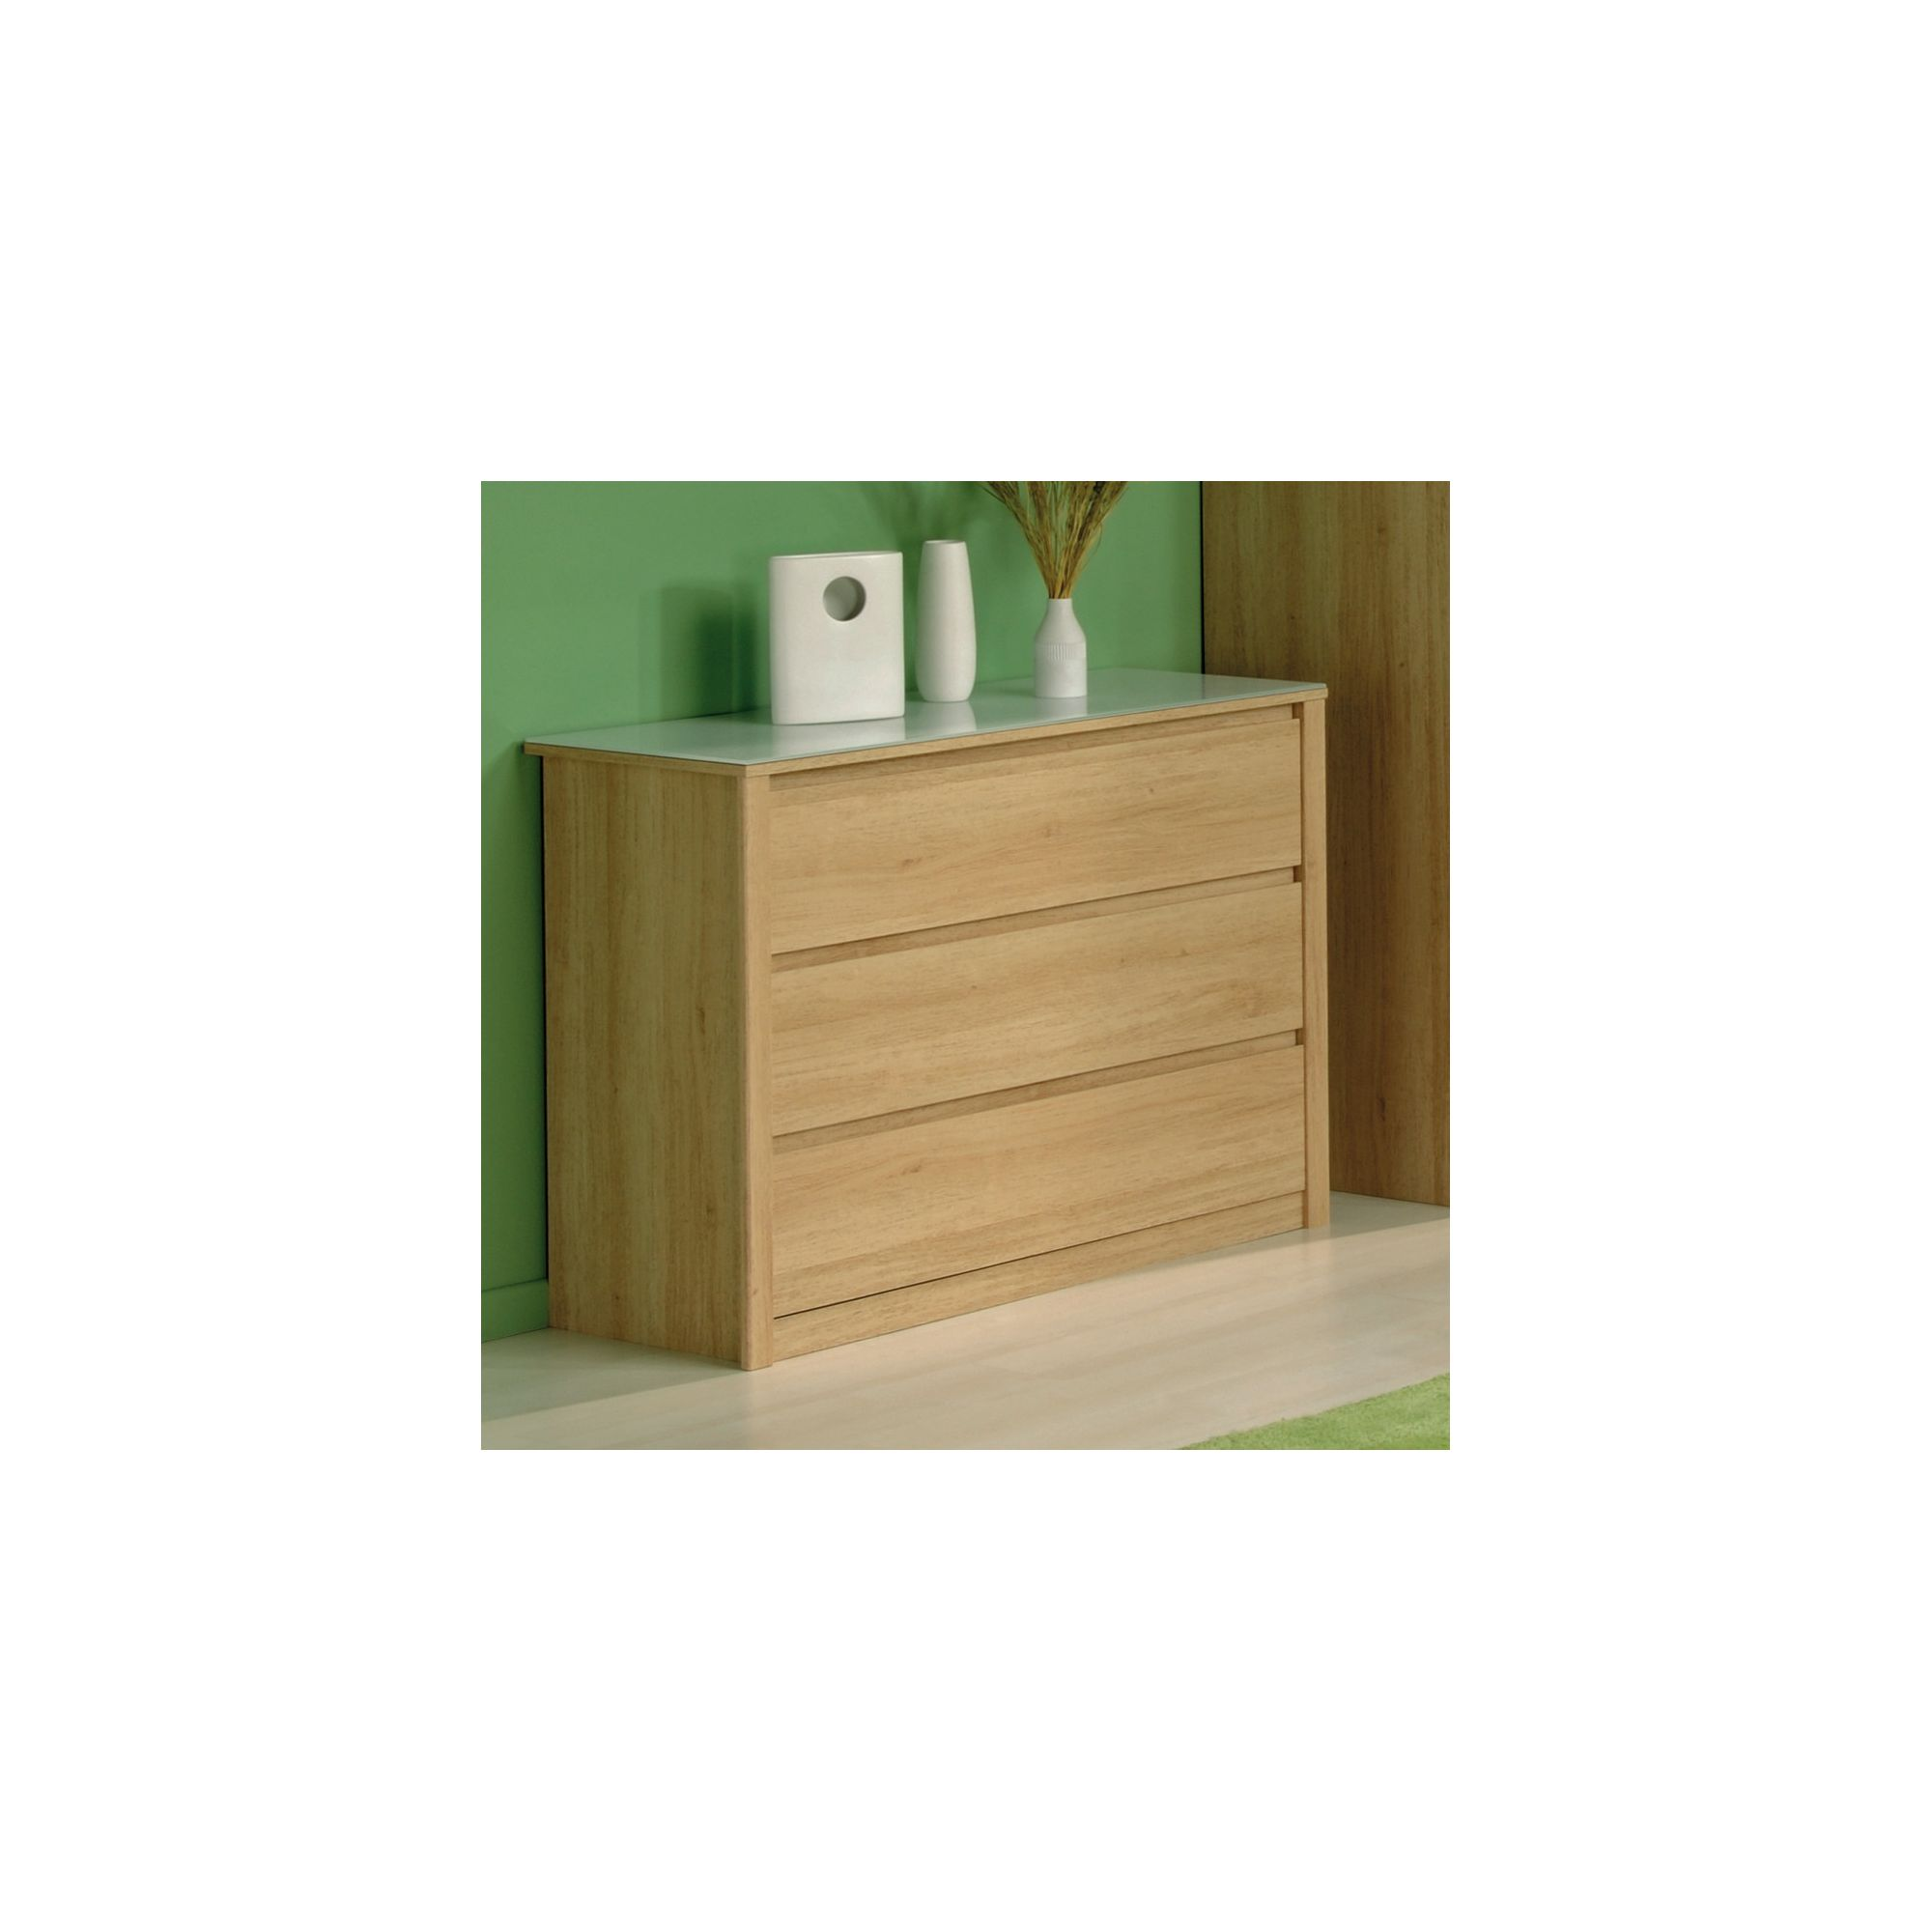 Parisot Spa 3 Drawer Chest at Tesco Direct